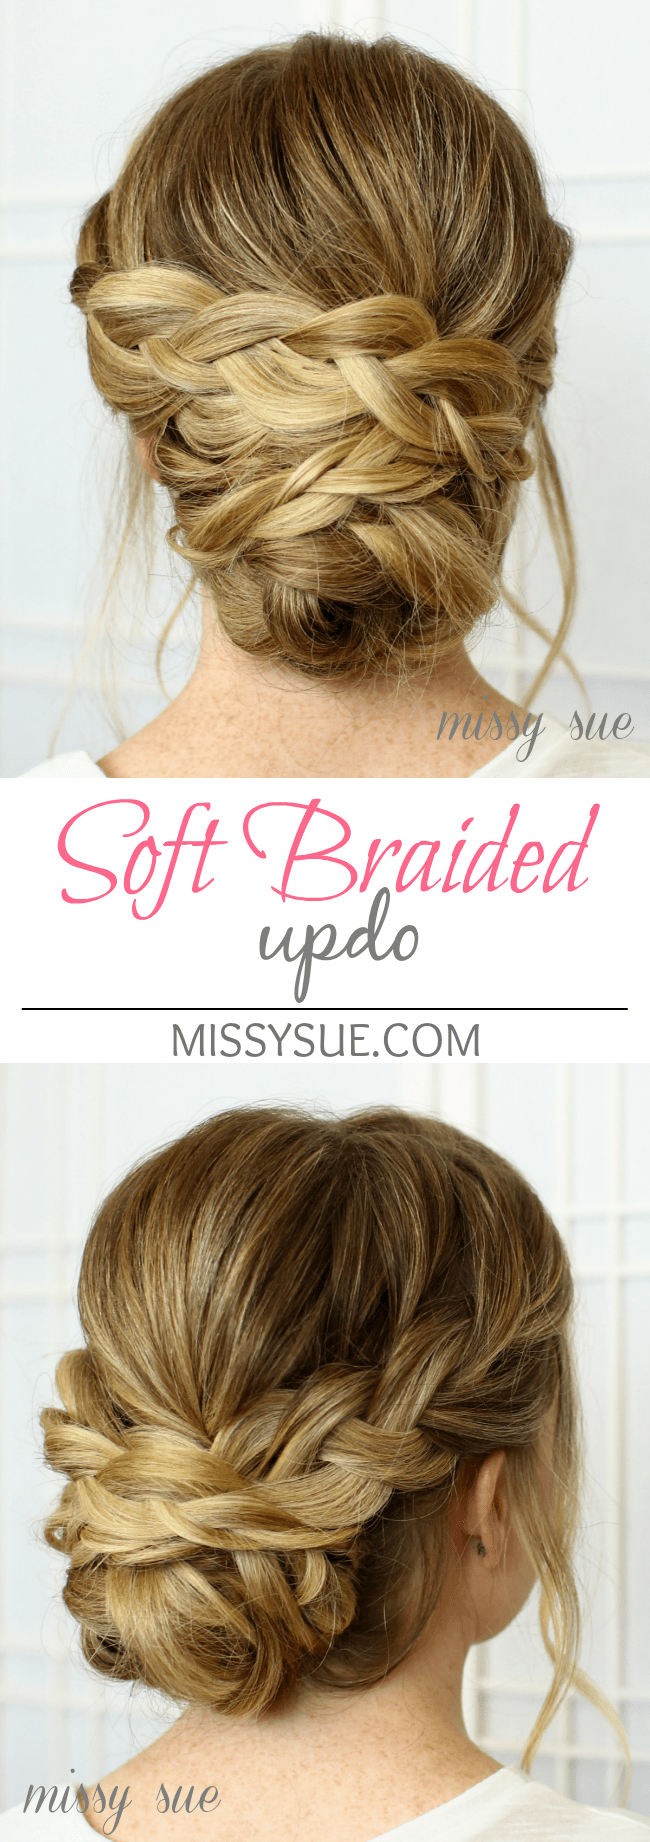 Soft braided updo soft braided updo bridal hairstyle junglespirit Choice Image